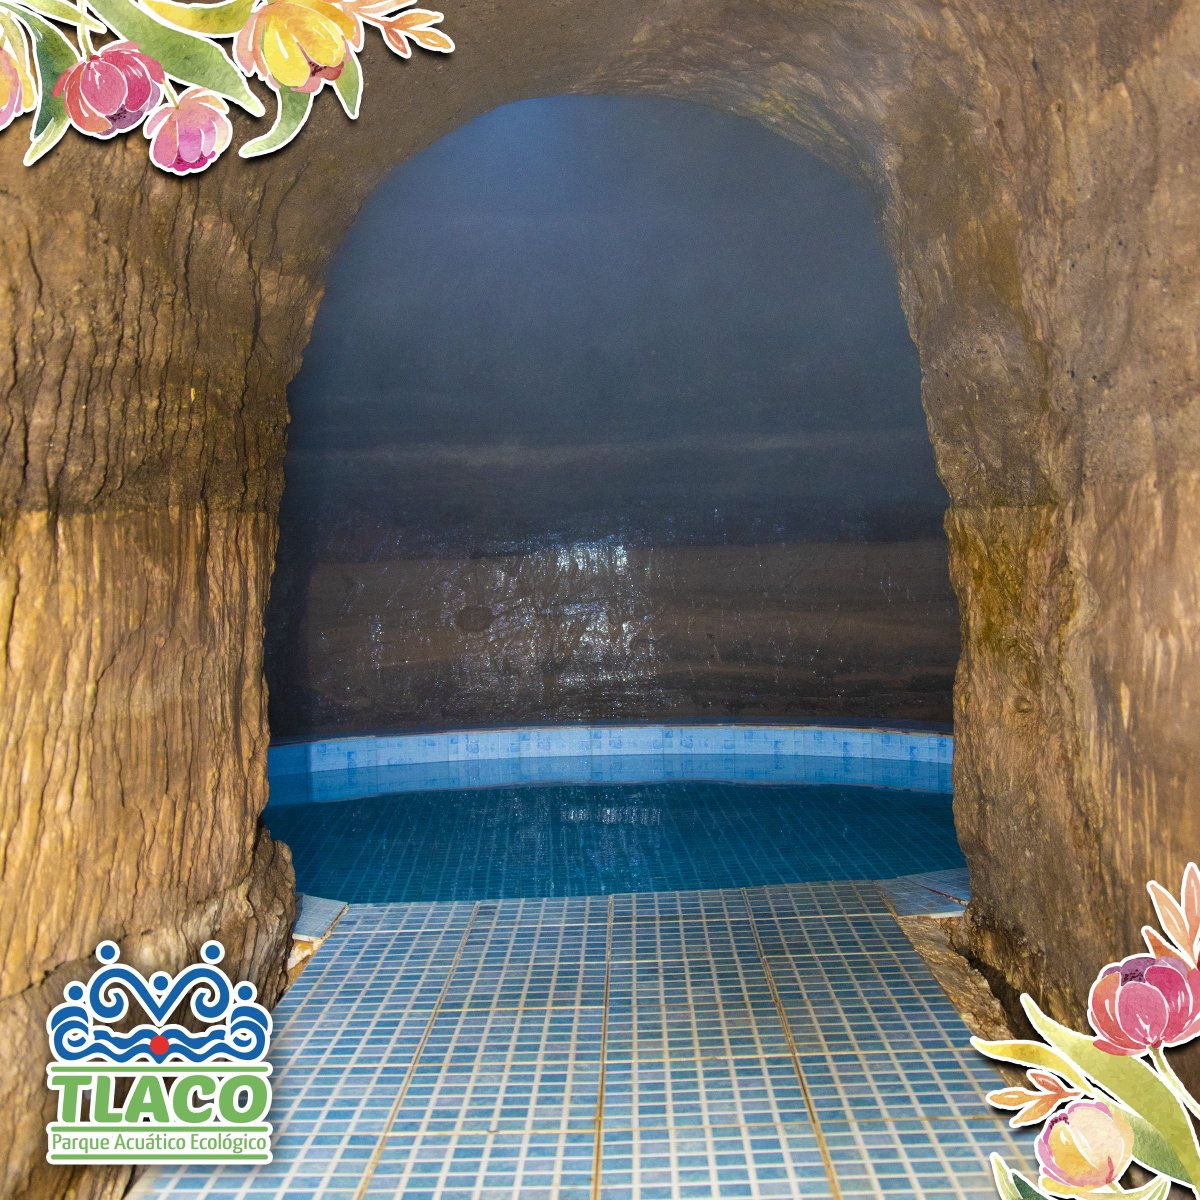 Jacuzzi Naturales.Tlaco On Twitter Nuestros Jacuzzis Naturales Son Perfectos